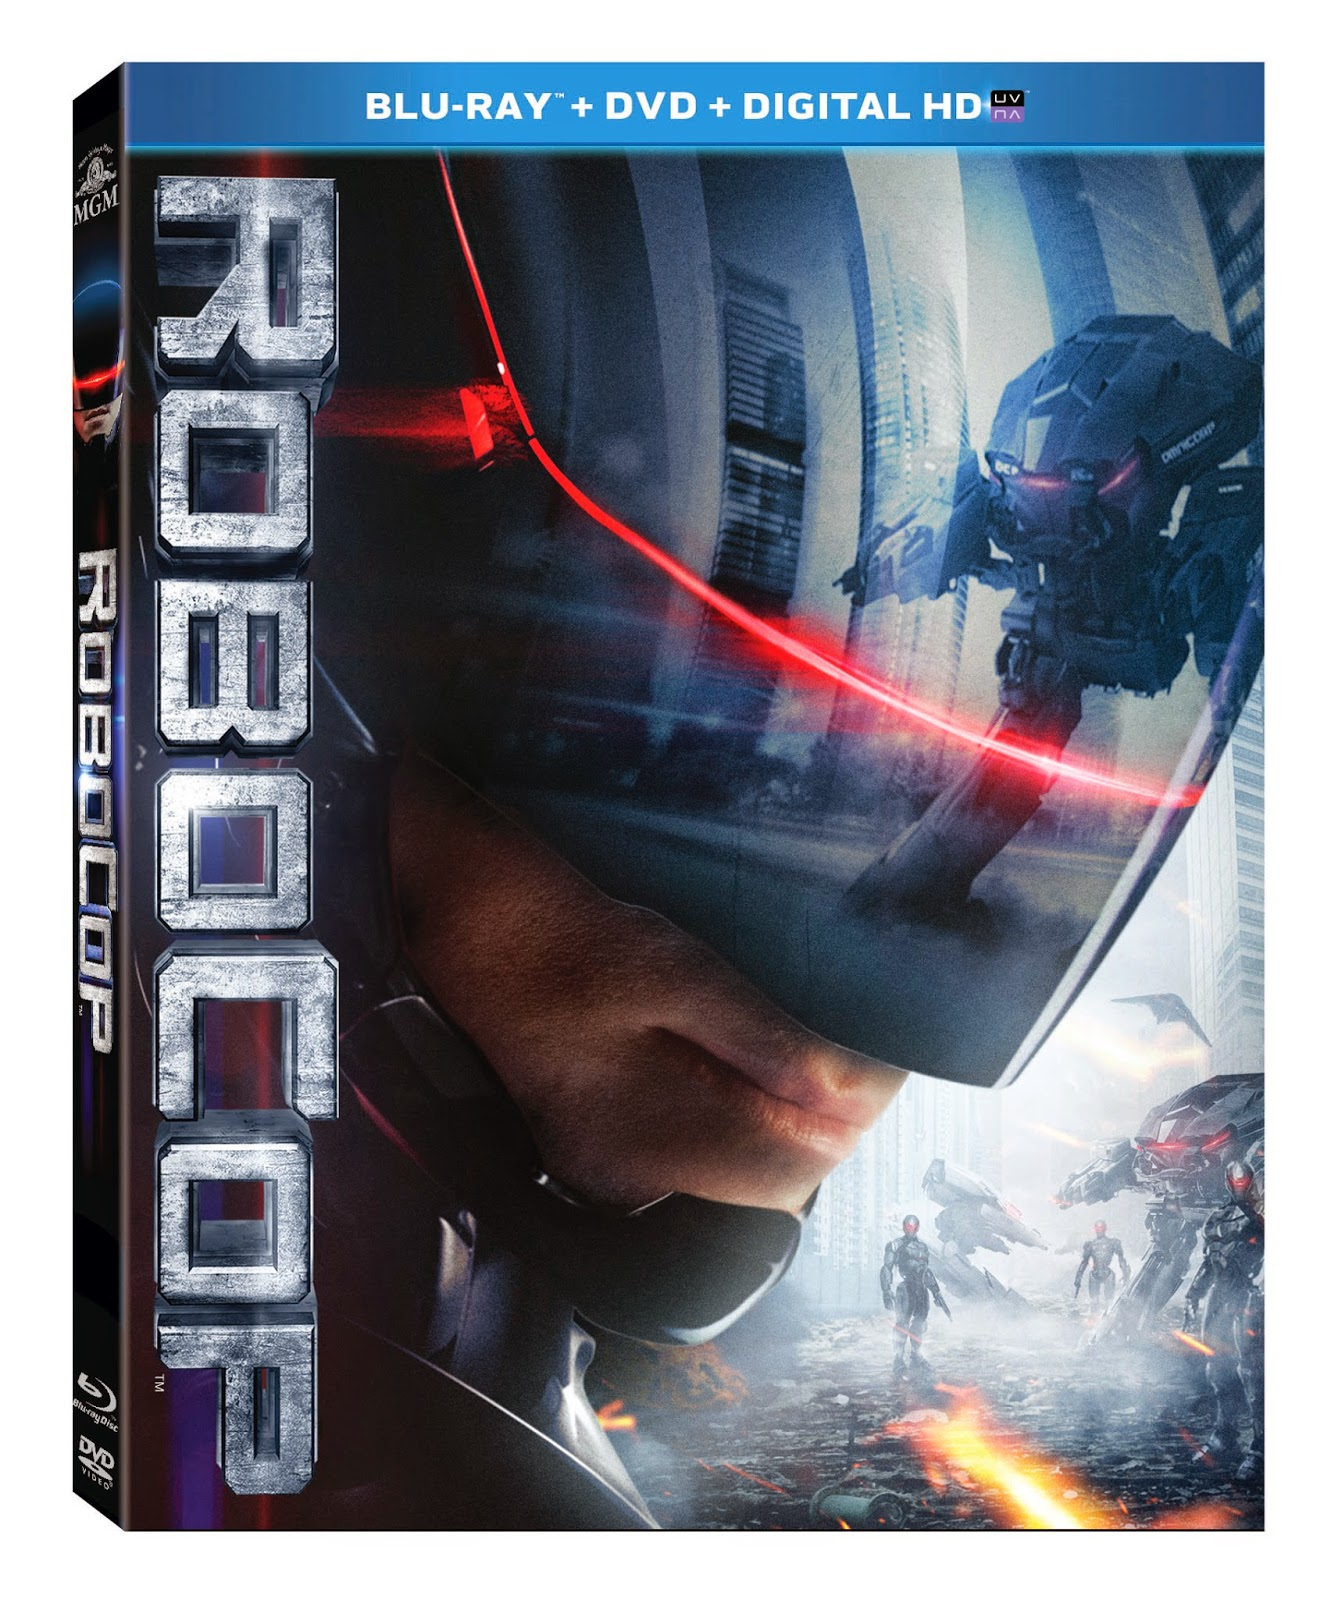 MnC Reviews: ROBOCOP Blu-ray DVD Combo Giveaway